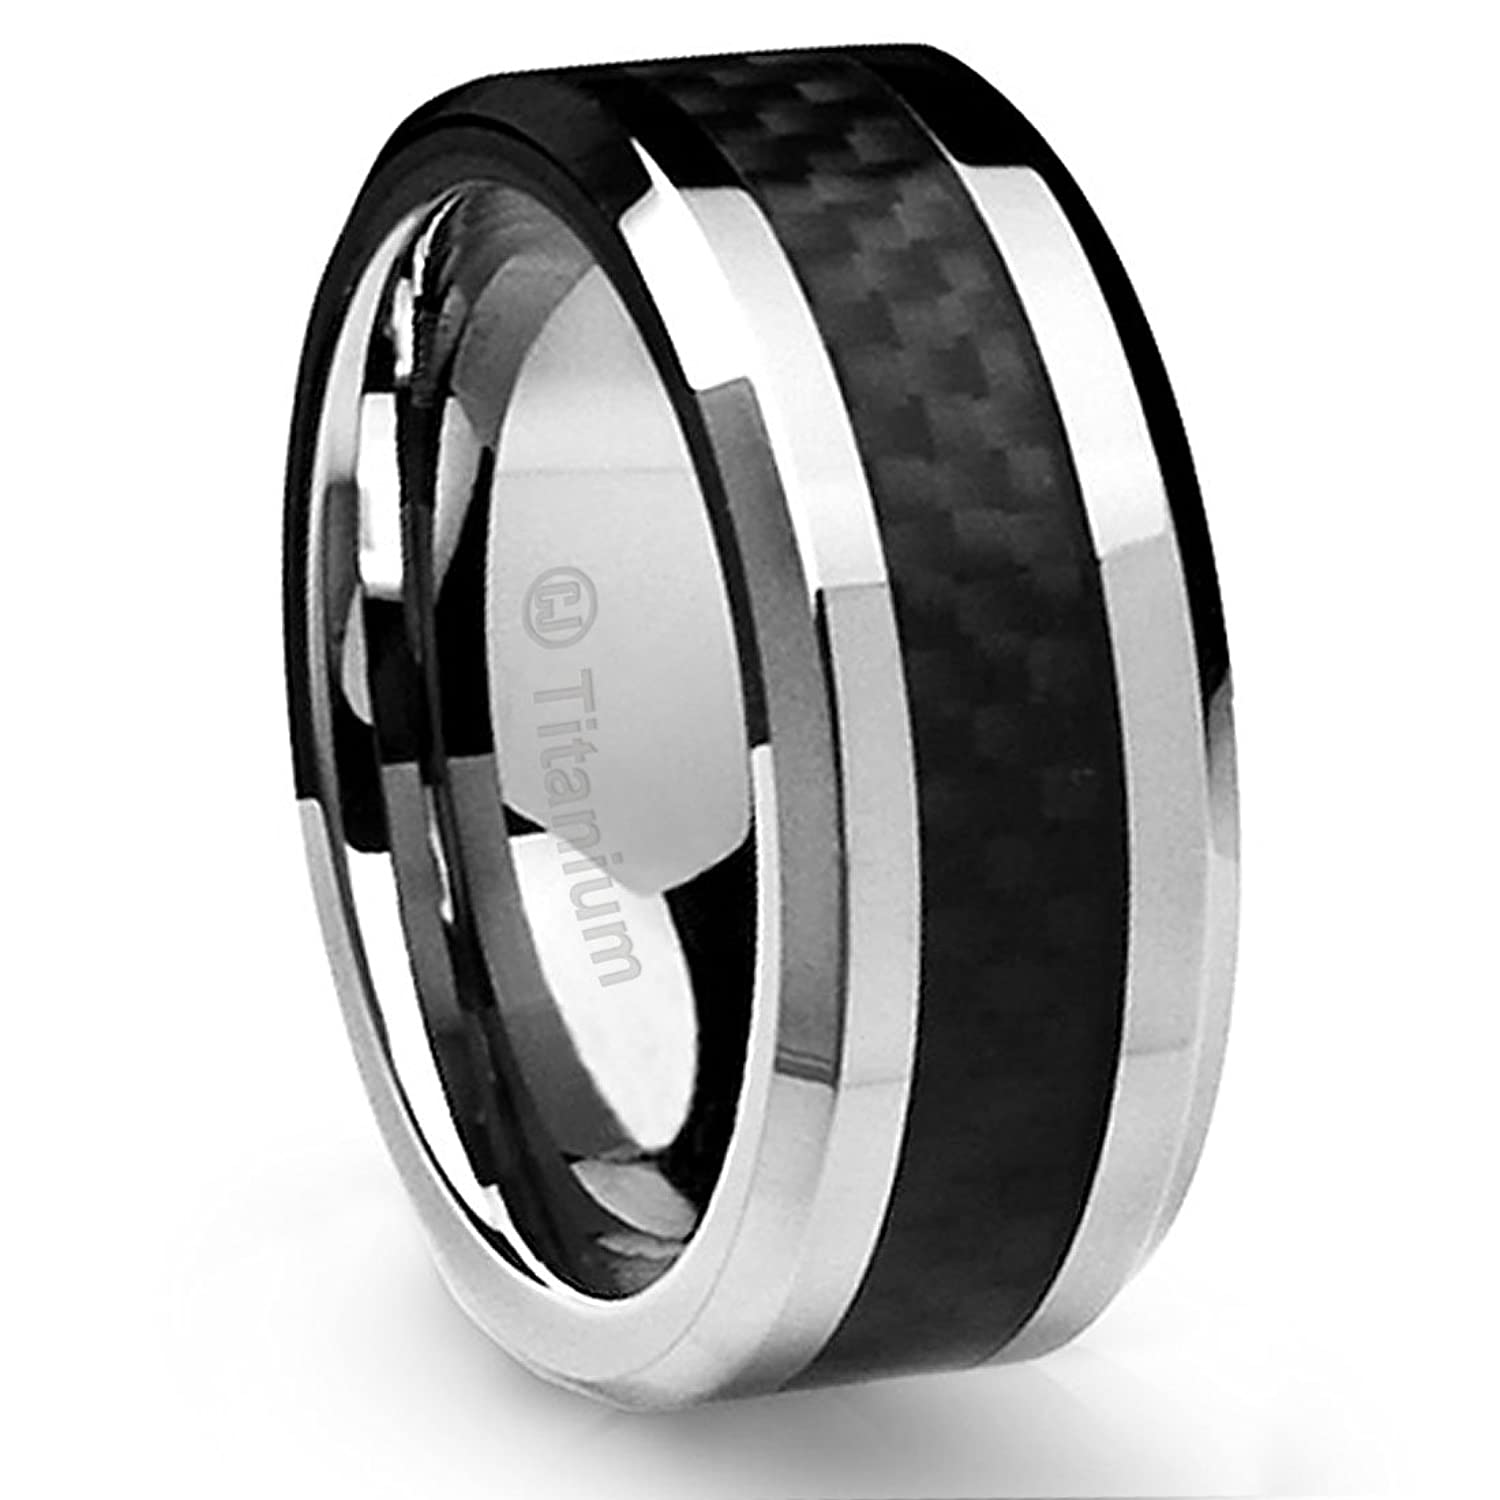 jewelry jean rings ring men s black play clayton wedding dousset band